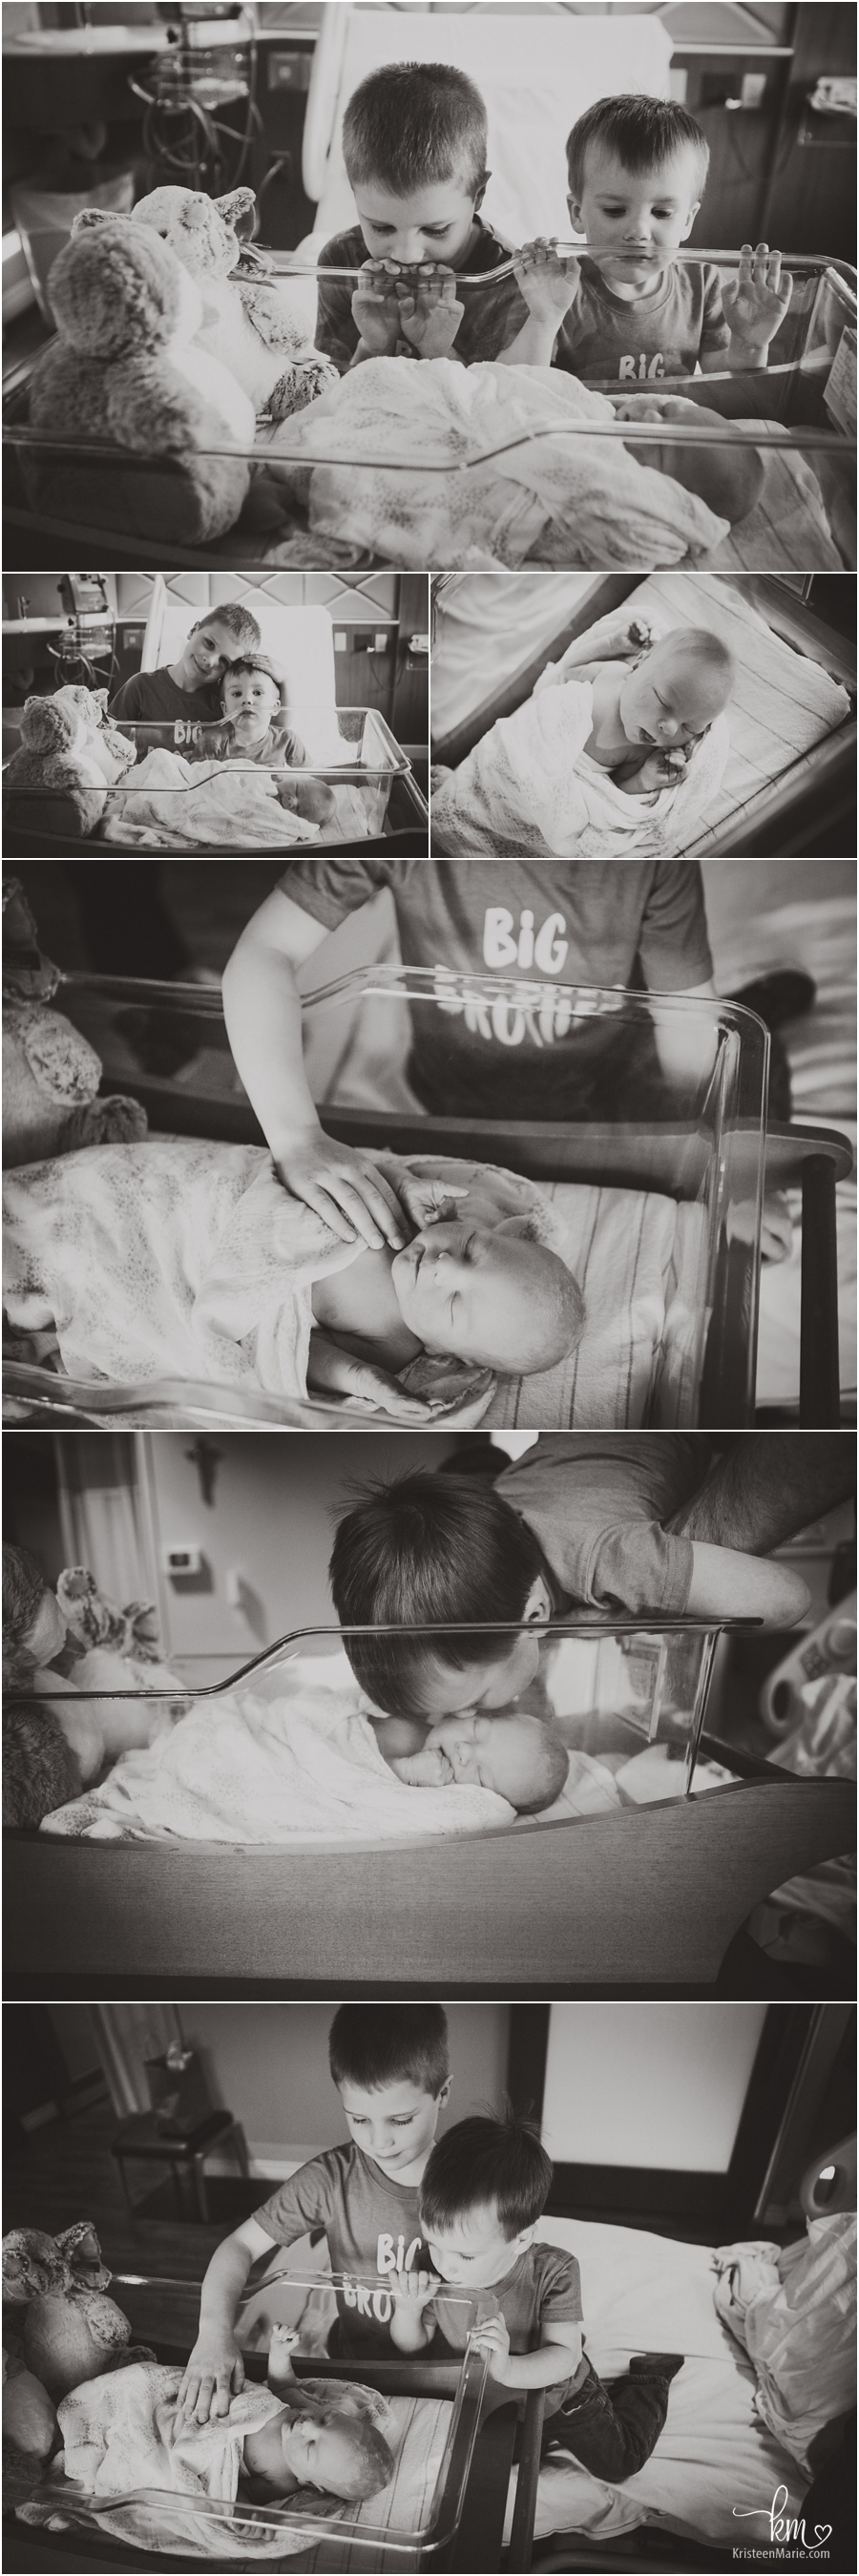 black and white images of meeting baby sibling for first time in hospital - Carmel Indiana Fresh 48 session